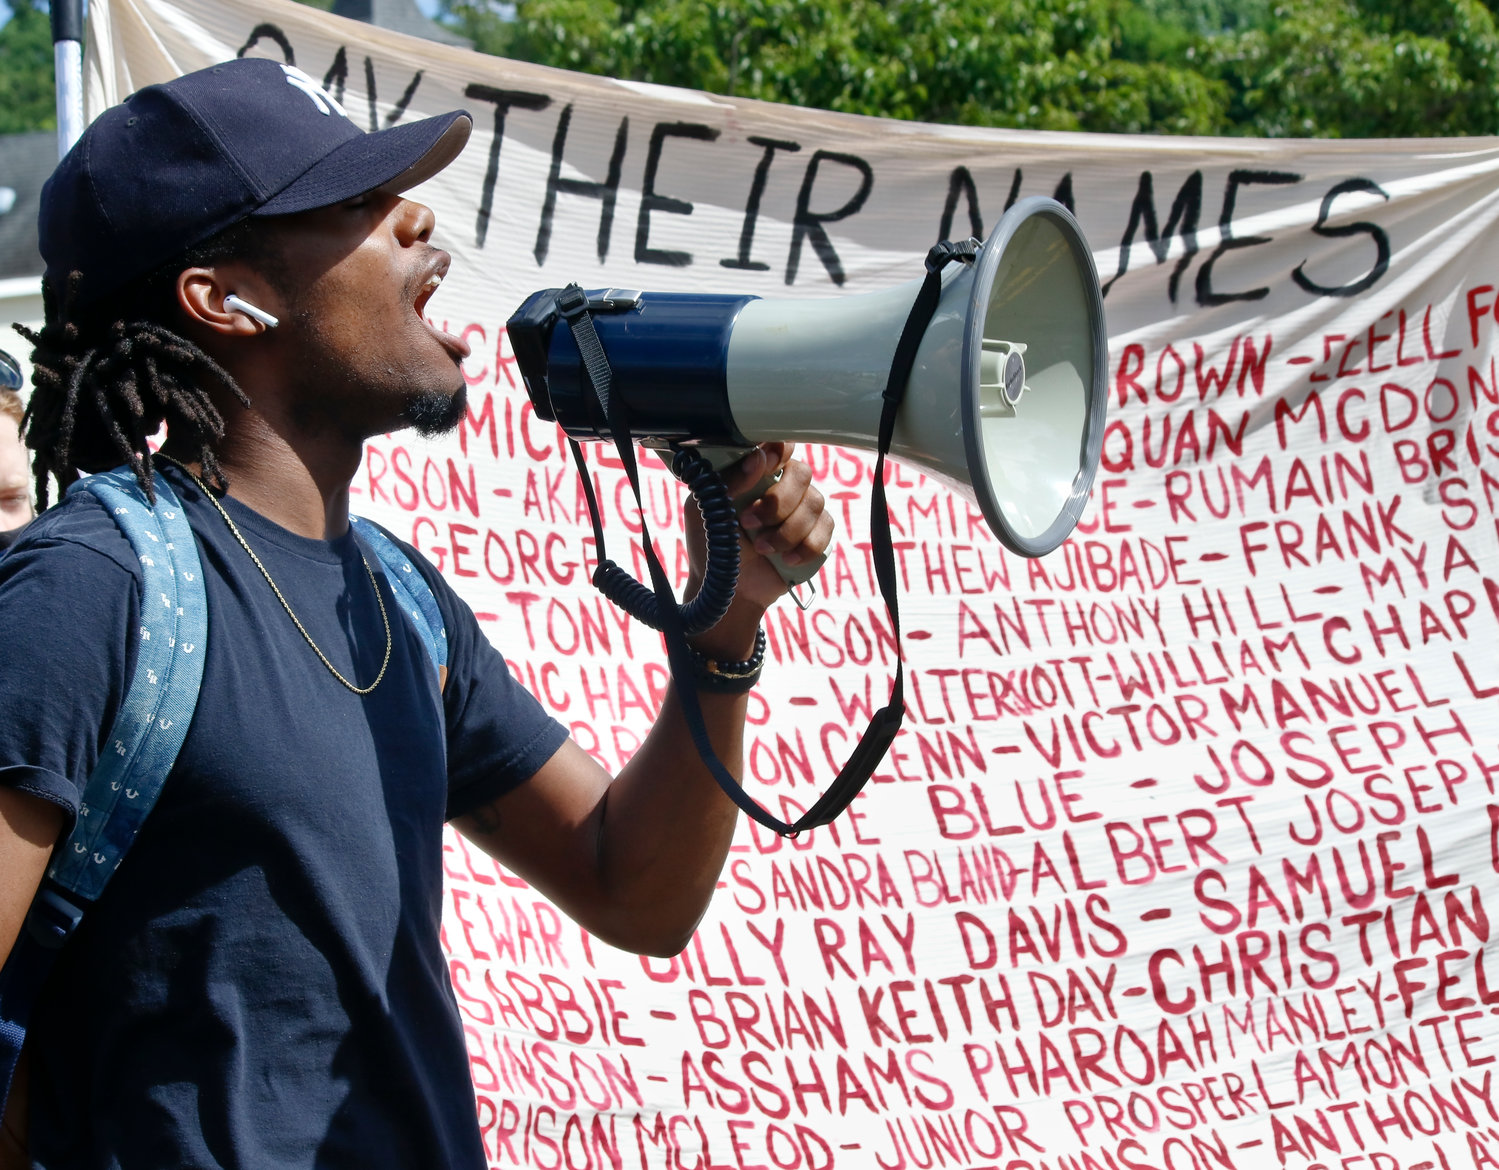 When Antwan Brown was handed a bullhorn at the Black Lives Matter Rally and March, he repeated that rallying cry.